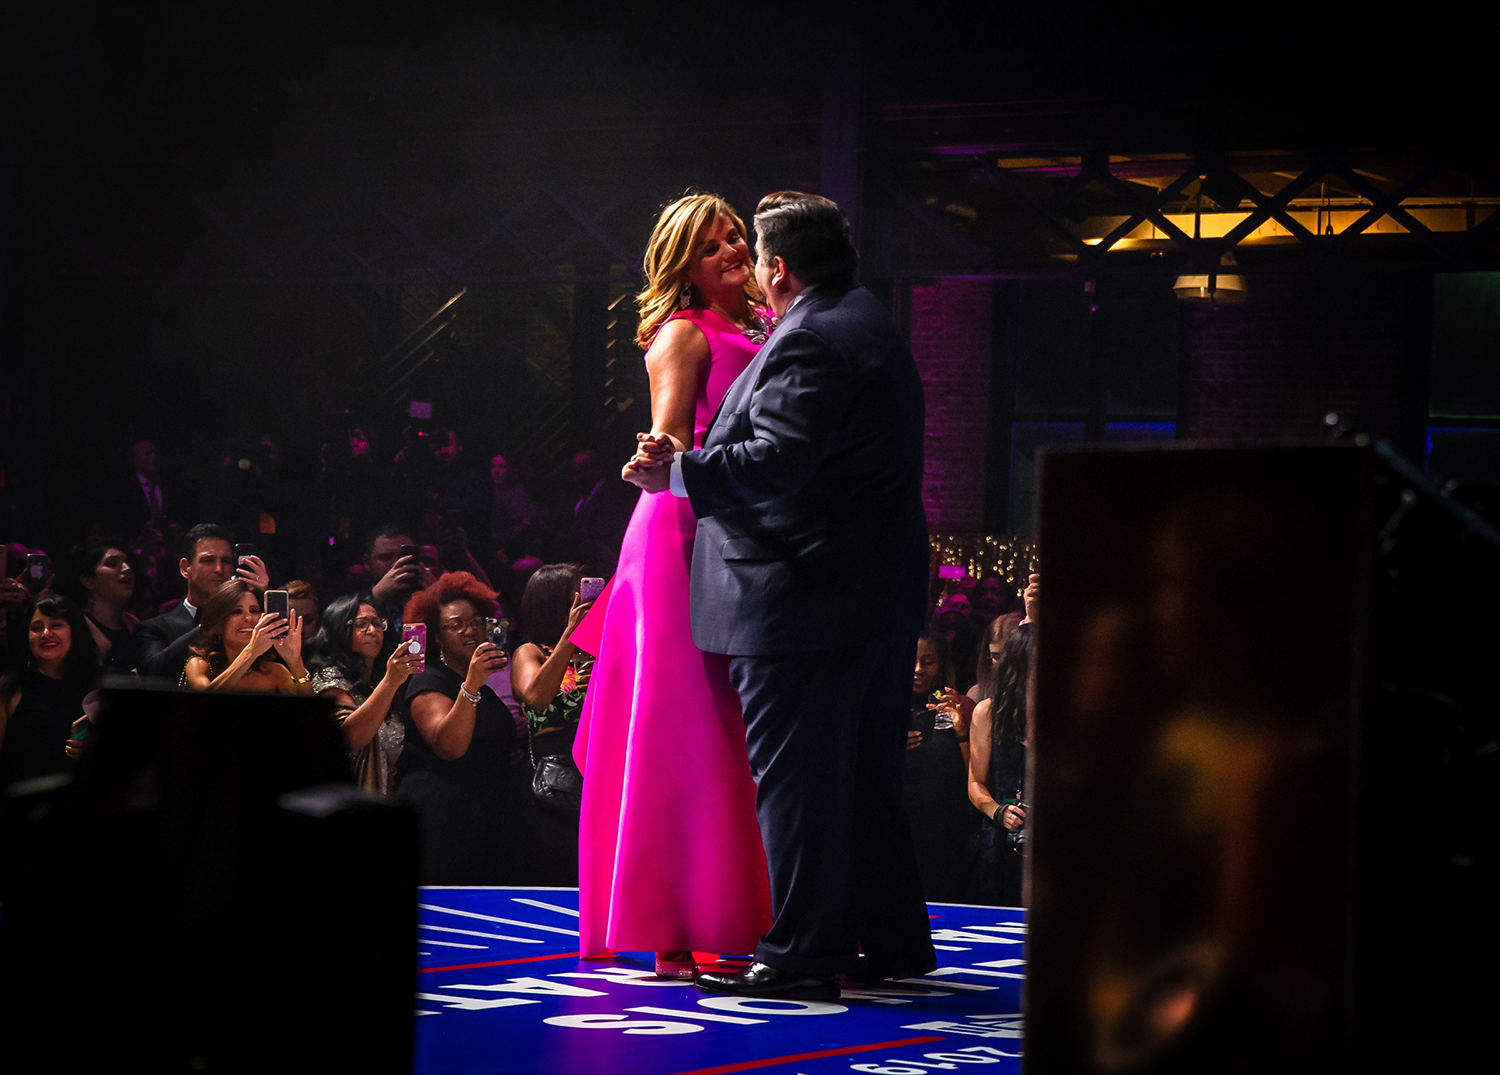 Gov. J.B. Pritzker dances with his wife M.K. Pritzker during their first dance at the Inaugural Ball at the Exposition Building on the Illinois State Fairgrounds, Monday, Jan. 14, 2019, in Springfield, Ill. [Justin L. Fowler/The State Journal-Register]